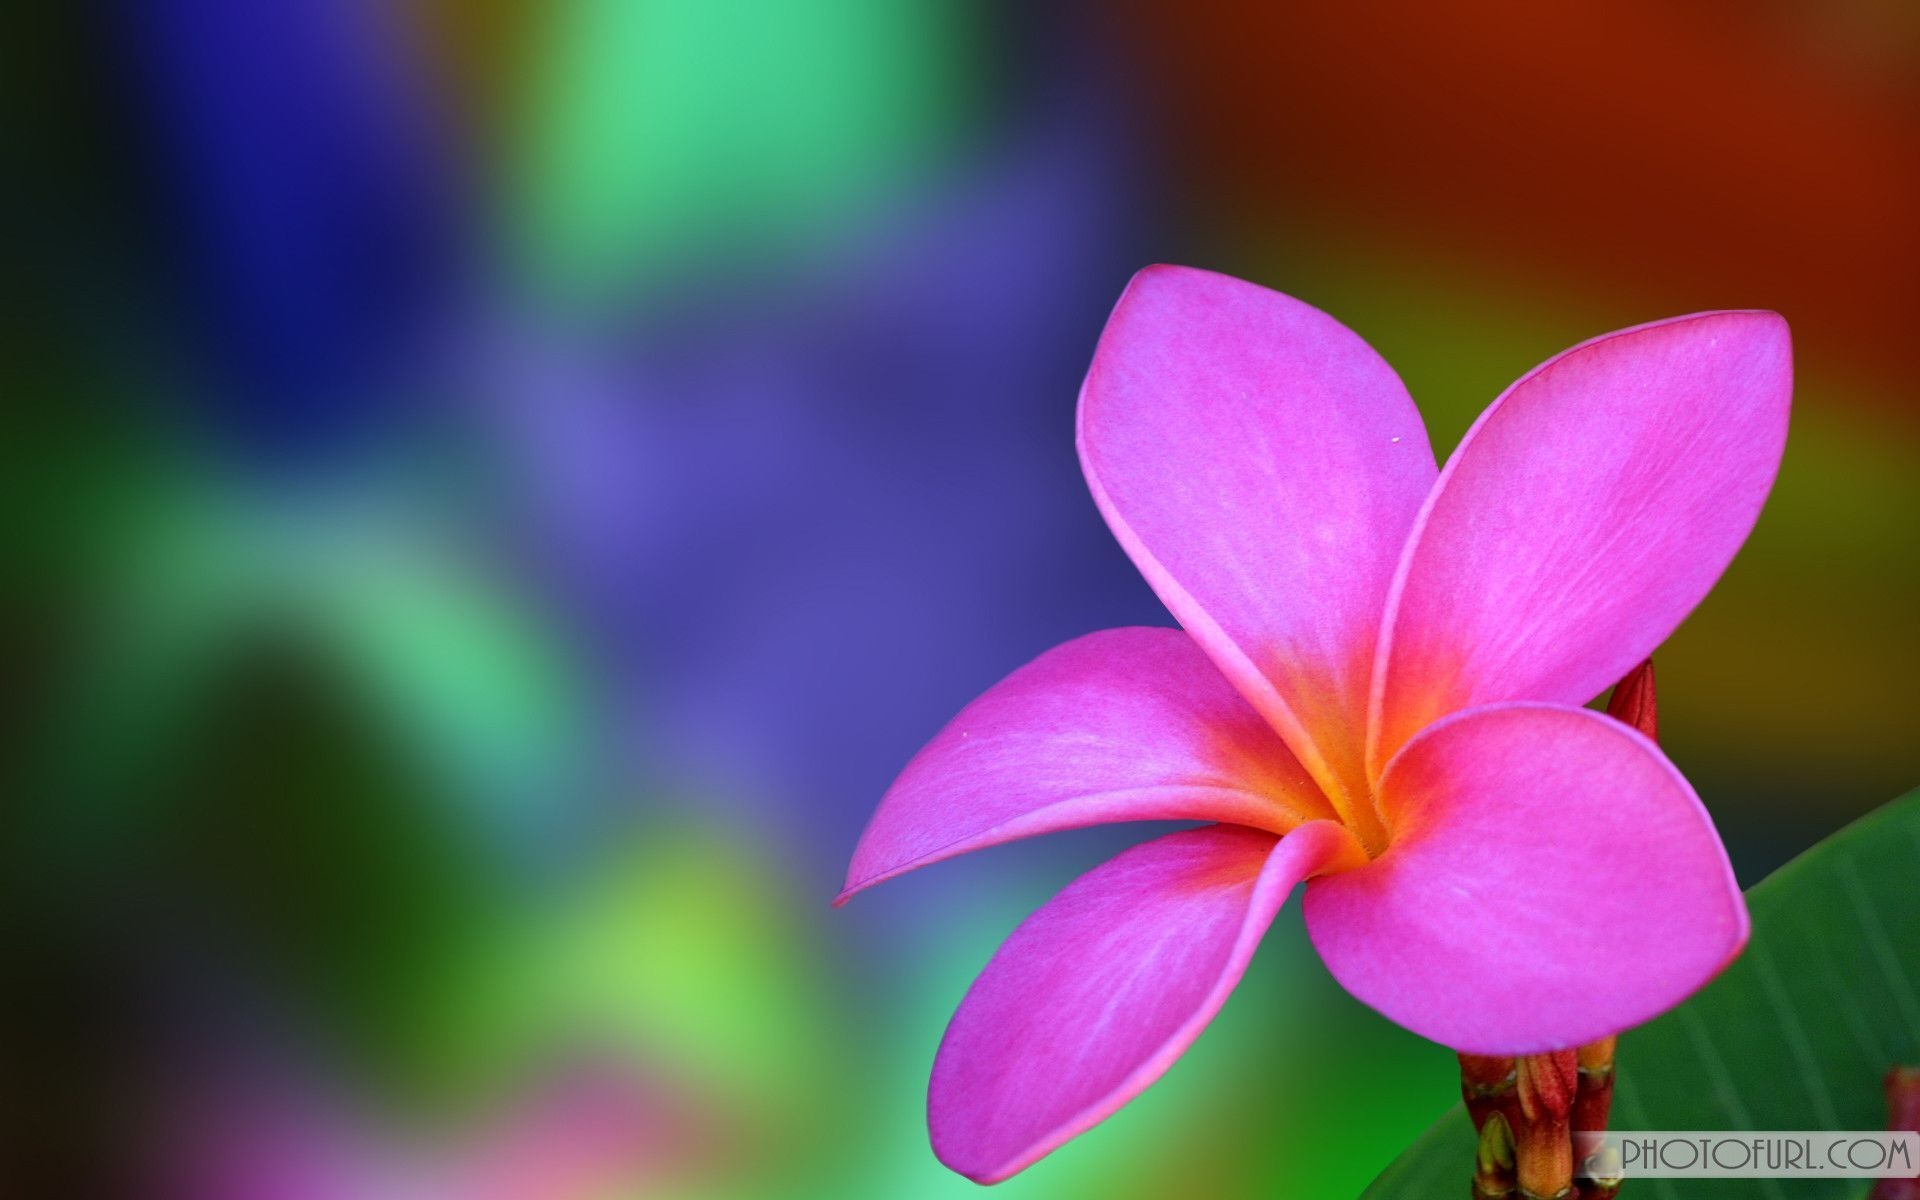 Flower Wallpapers For Computer Wallpaper Desktop On Full Hd Pics